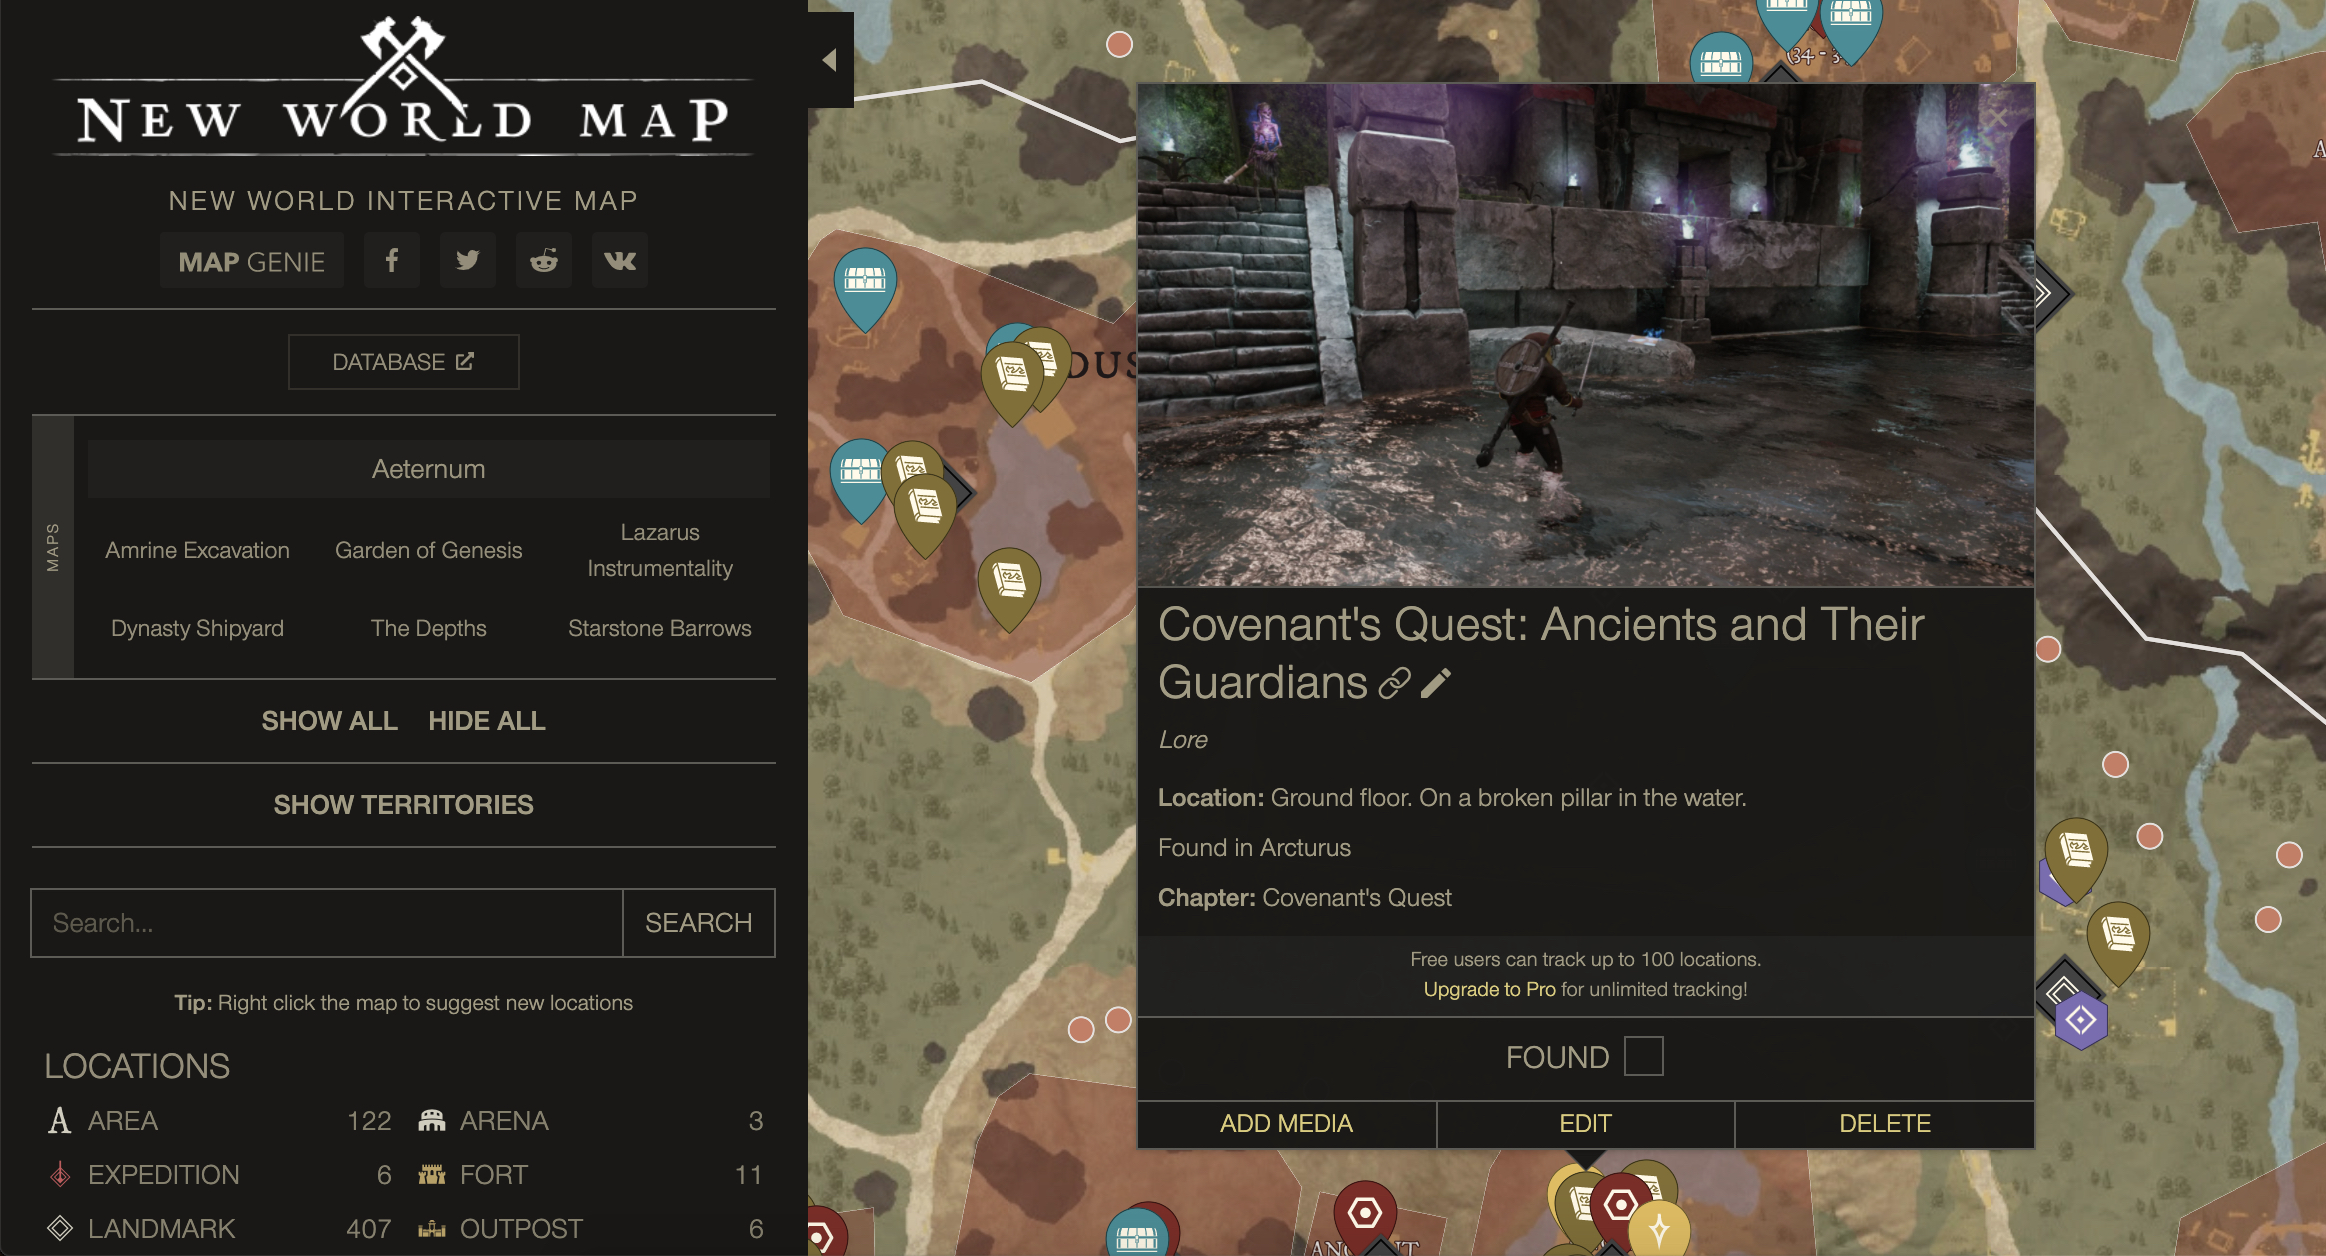 New World - Ultimate Guide + All Map - Lore - Resources - Expeditions + Walkthrough - Maps - 25A4D72